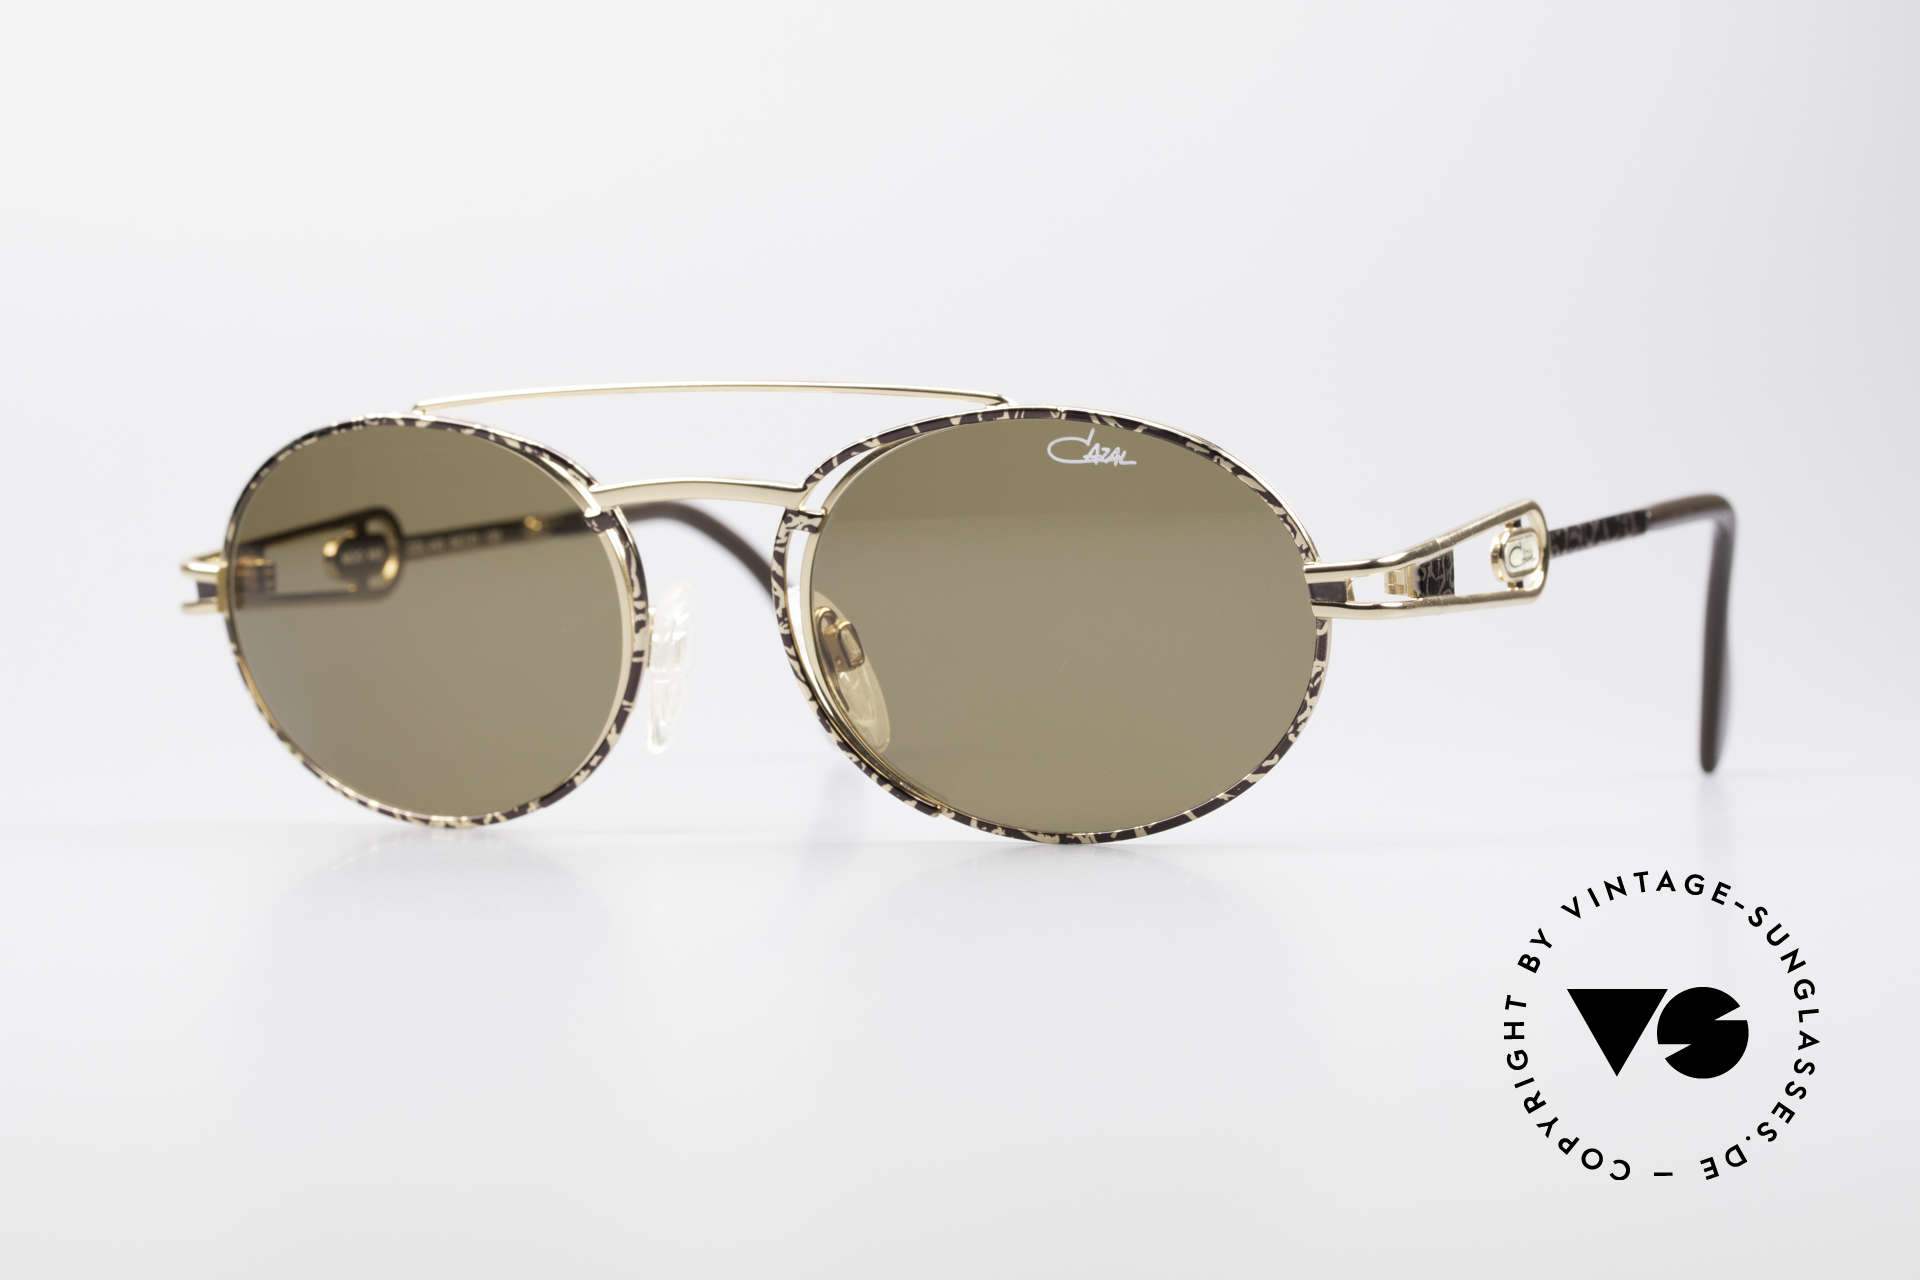 Cazal 965 90s Steampunk Oval Shades, very striking vintage sunglasses by CAZAL from 1996, Made for Men and Women